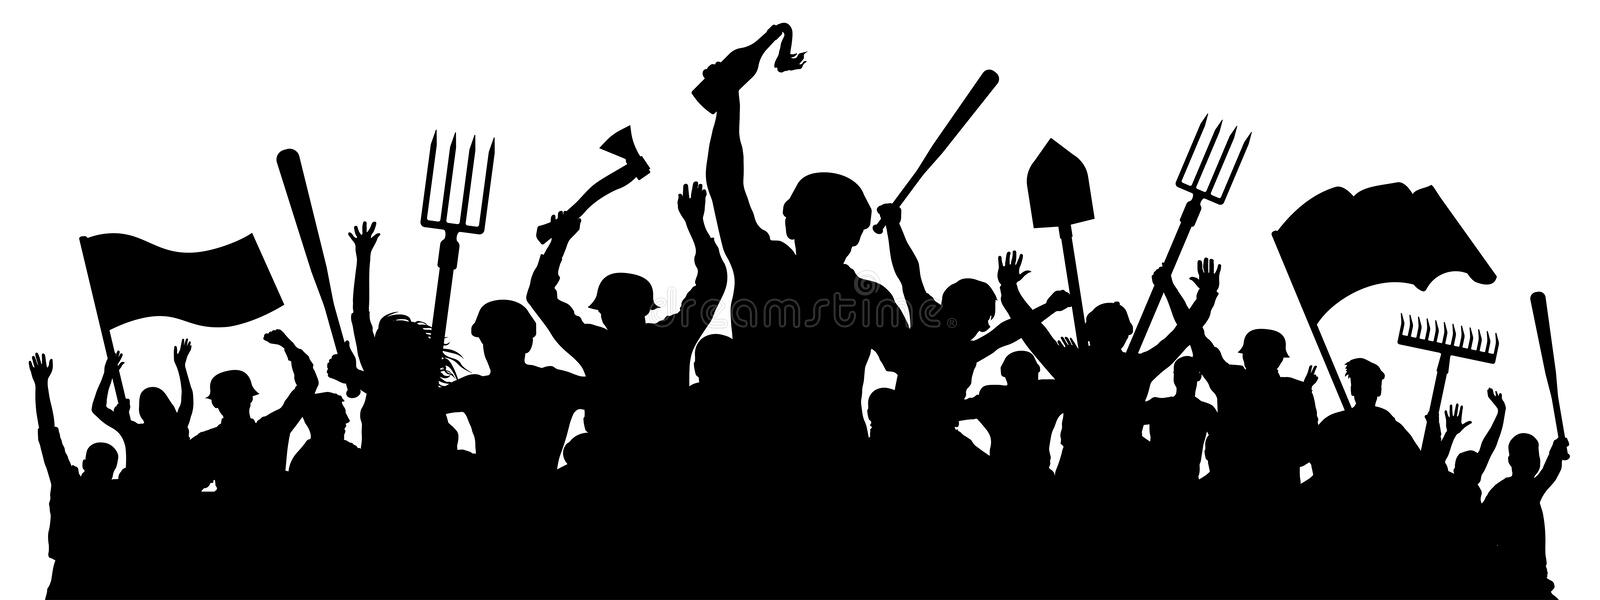 Angry crowd of people. Mass riots. Protest revolution silhouette vector vector illustration